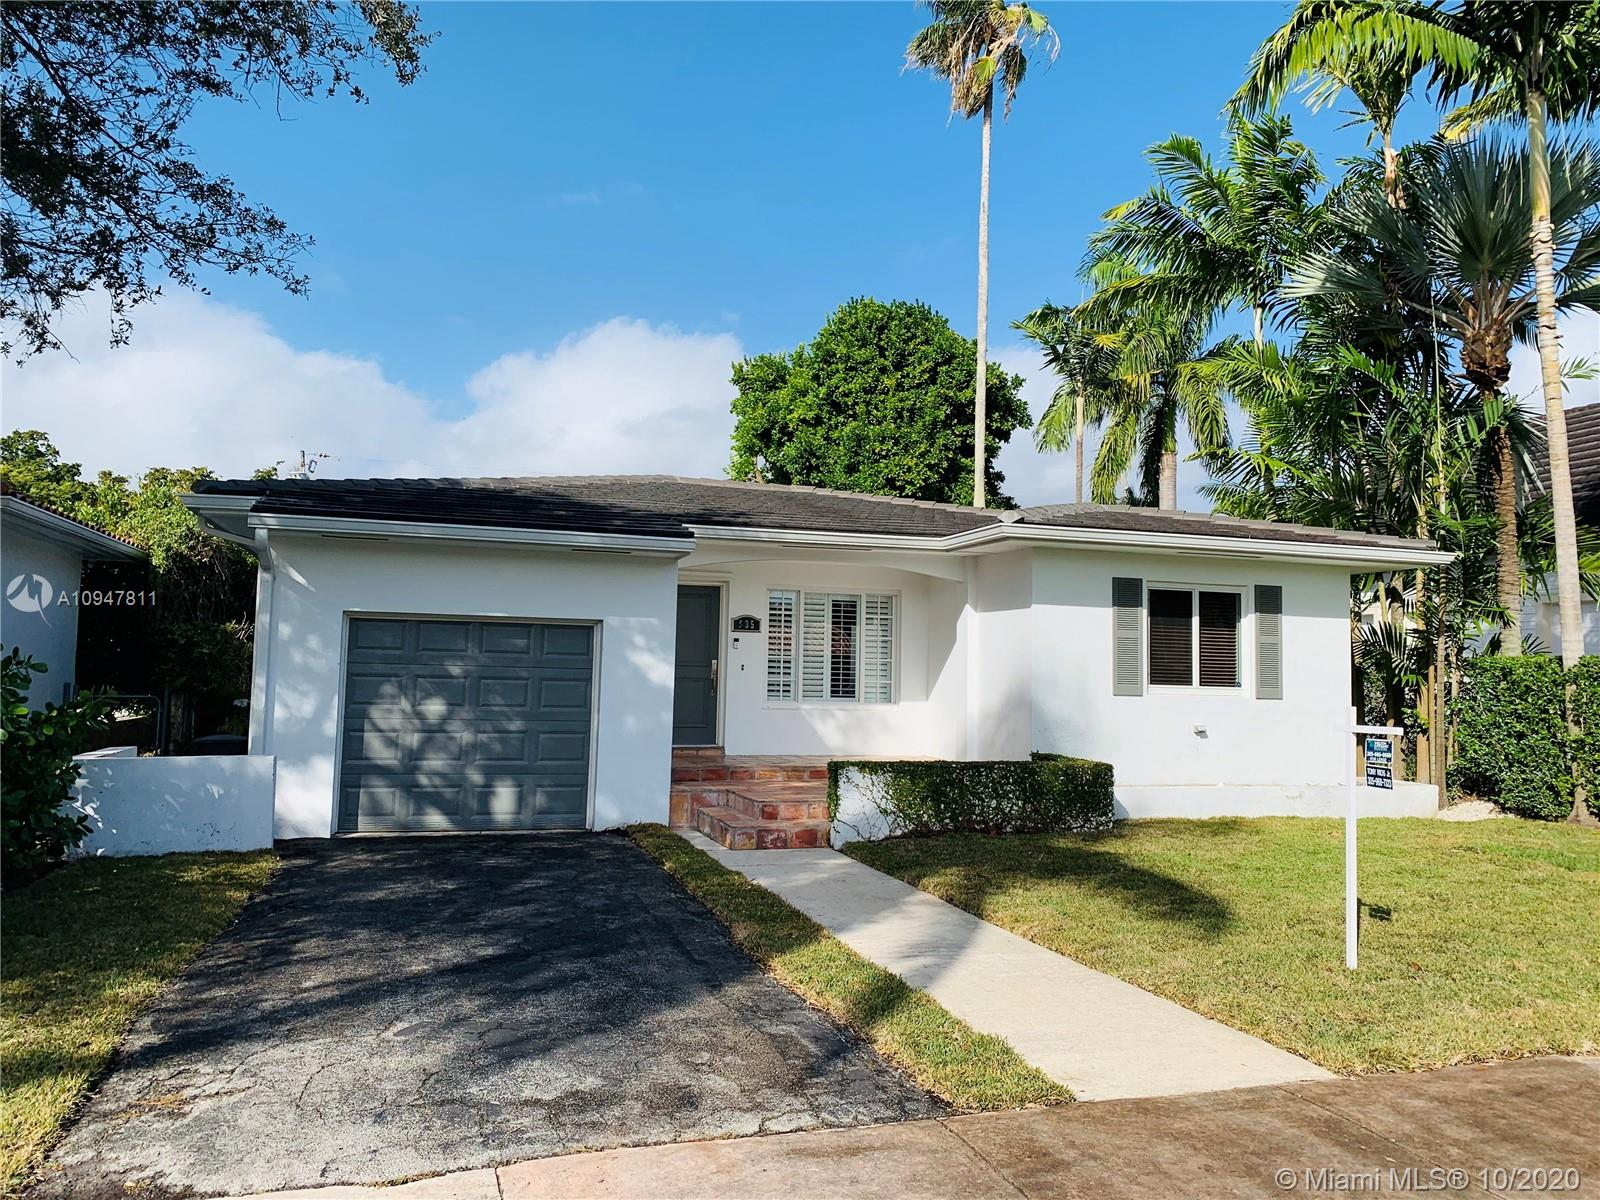 535  Luenga Ave  For Sale A10947811, FL